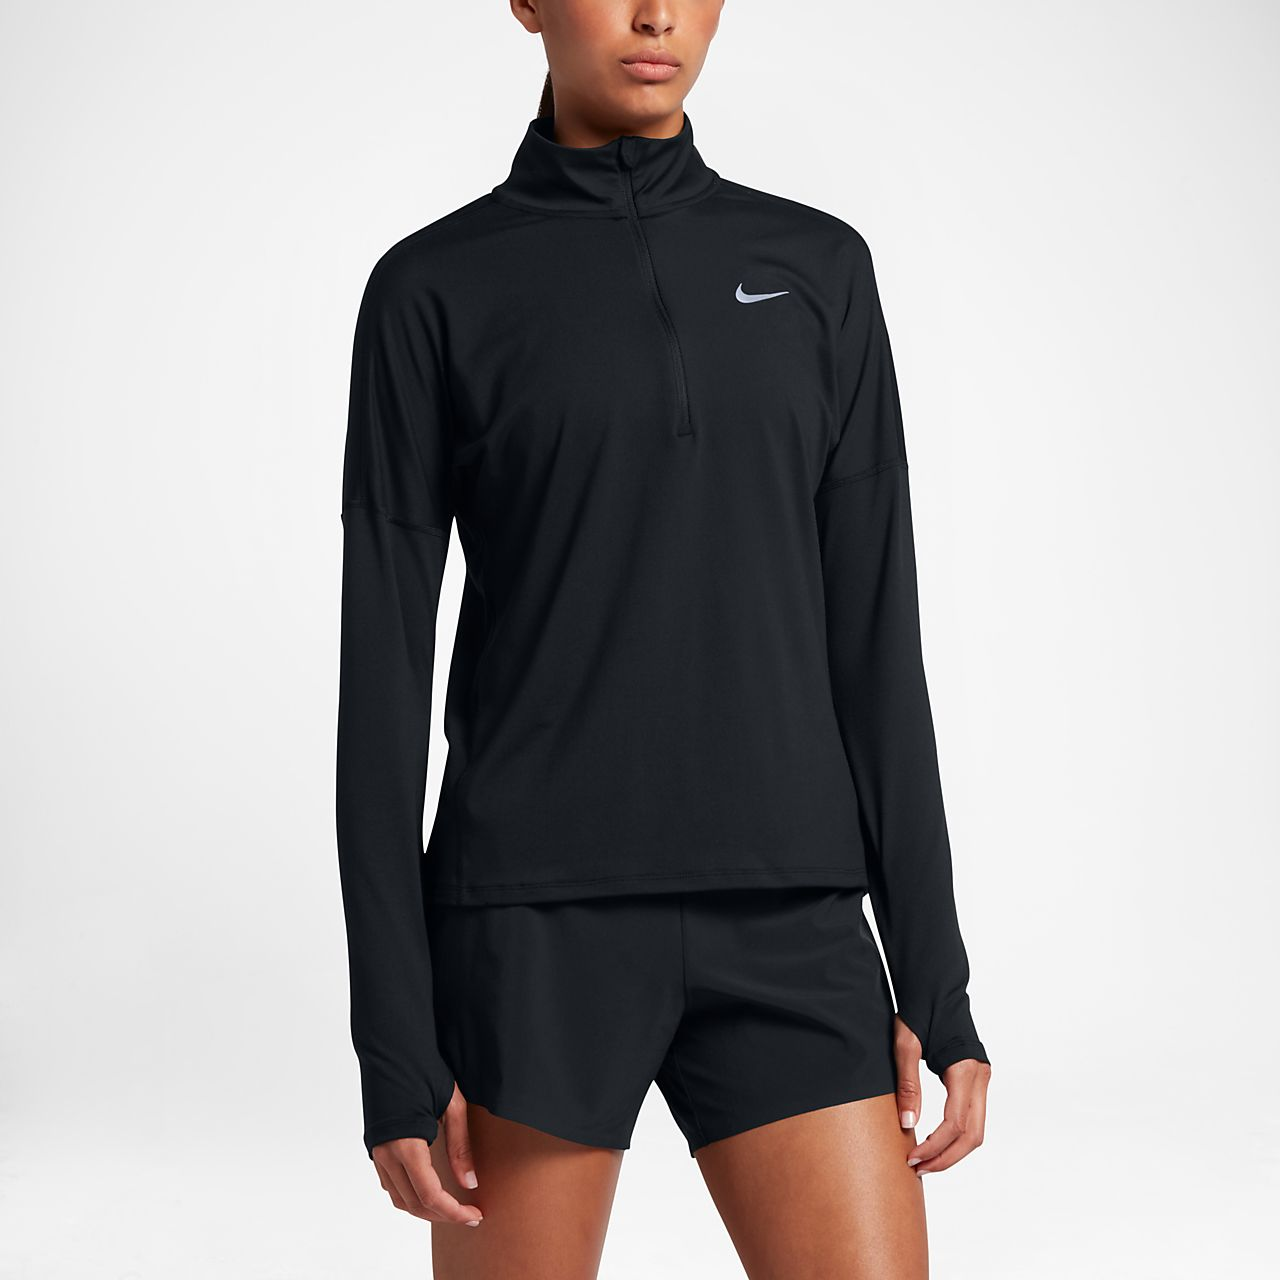 Womens Nike Dri Fit Long Sleeve Running Shirt